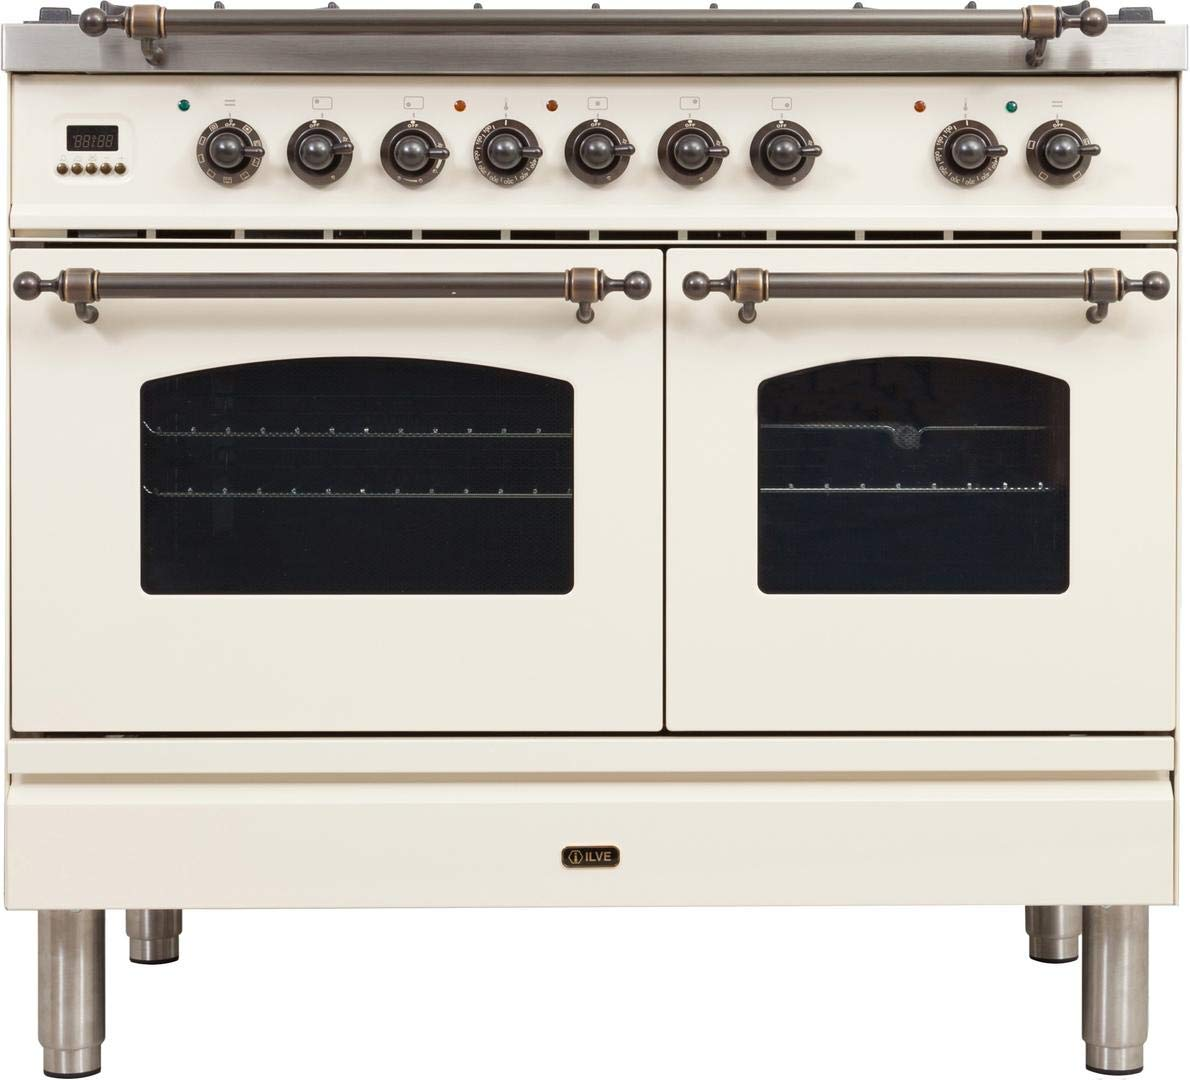 Ilve UPDN100FDMPAYLP Nostalgie Series 40 Inch Dual Fuel Convection Freestanding Range, 5 Sealed Brass Burners, 4 cu.ft. Total Oven Capacity in Antique White, Bronze Trim (Liquid Propane)